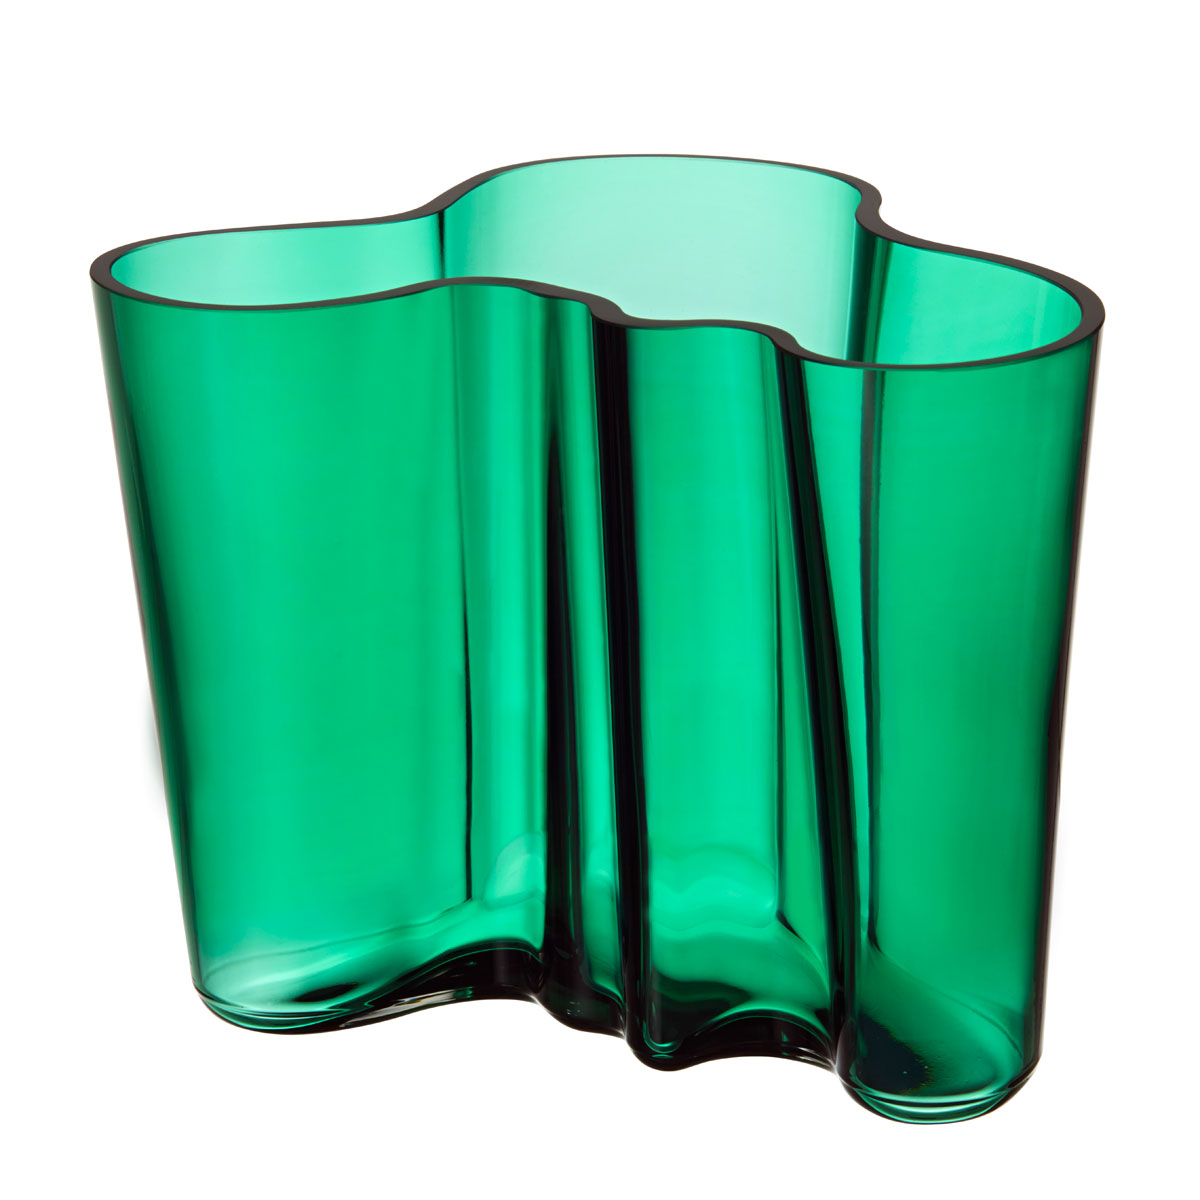 iittala aalto emerald vase 6 1 4 iittala alvar aalto. Black Bedroom Furniture Sets. Home Design Ideas